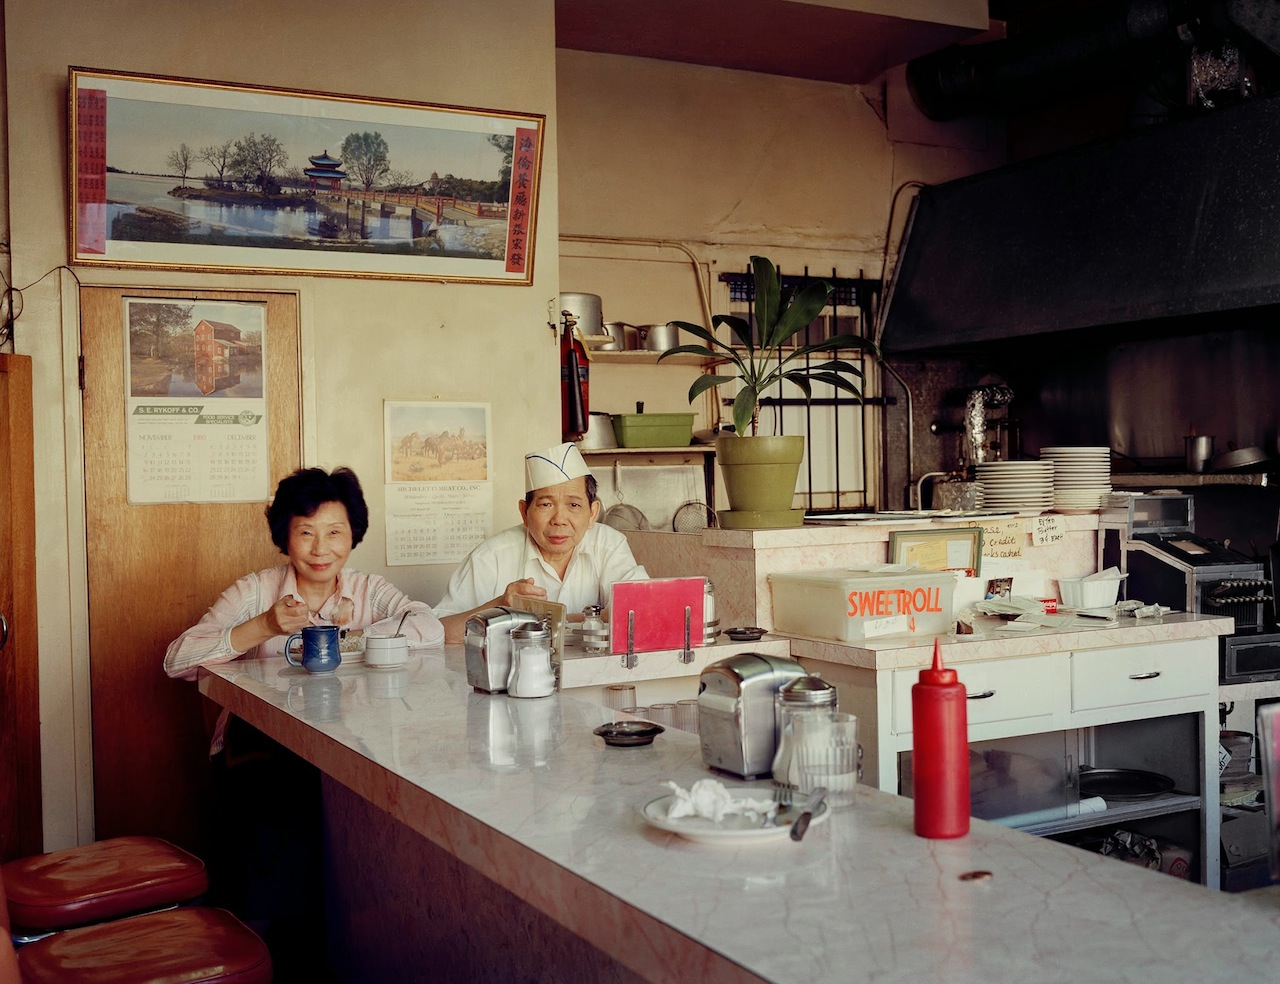 """Janet Delaney, """"Helen and her husband at the Helen Cafe, 480 6th Street"""" (All images courtesy of the De Young Museum)"""